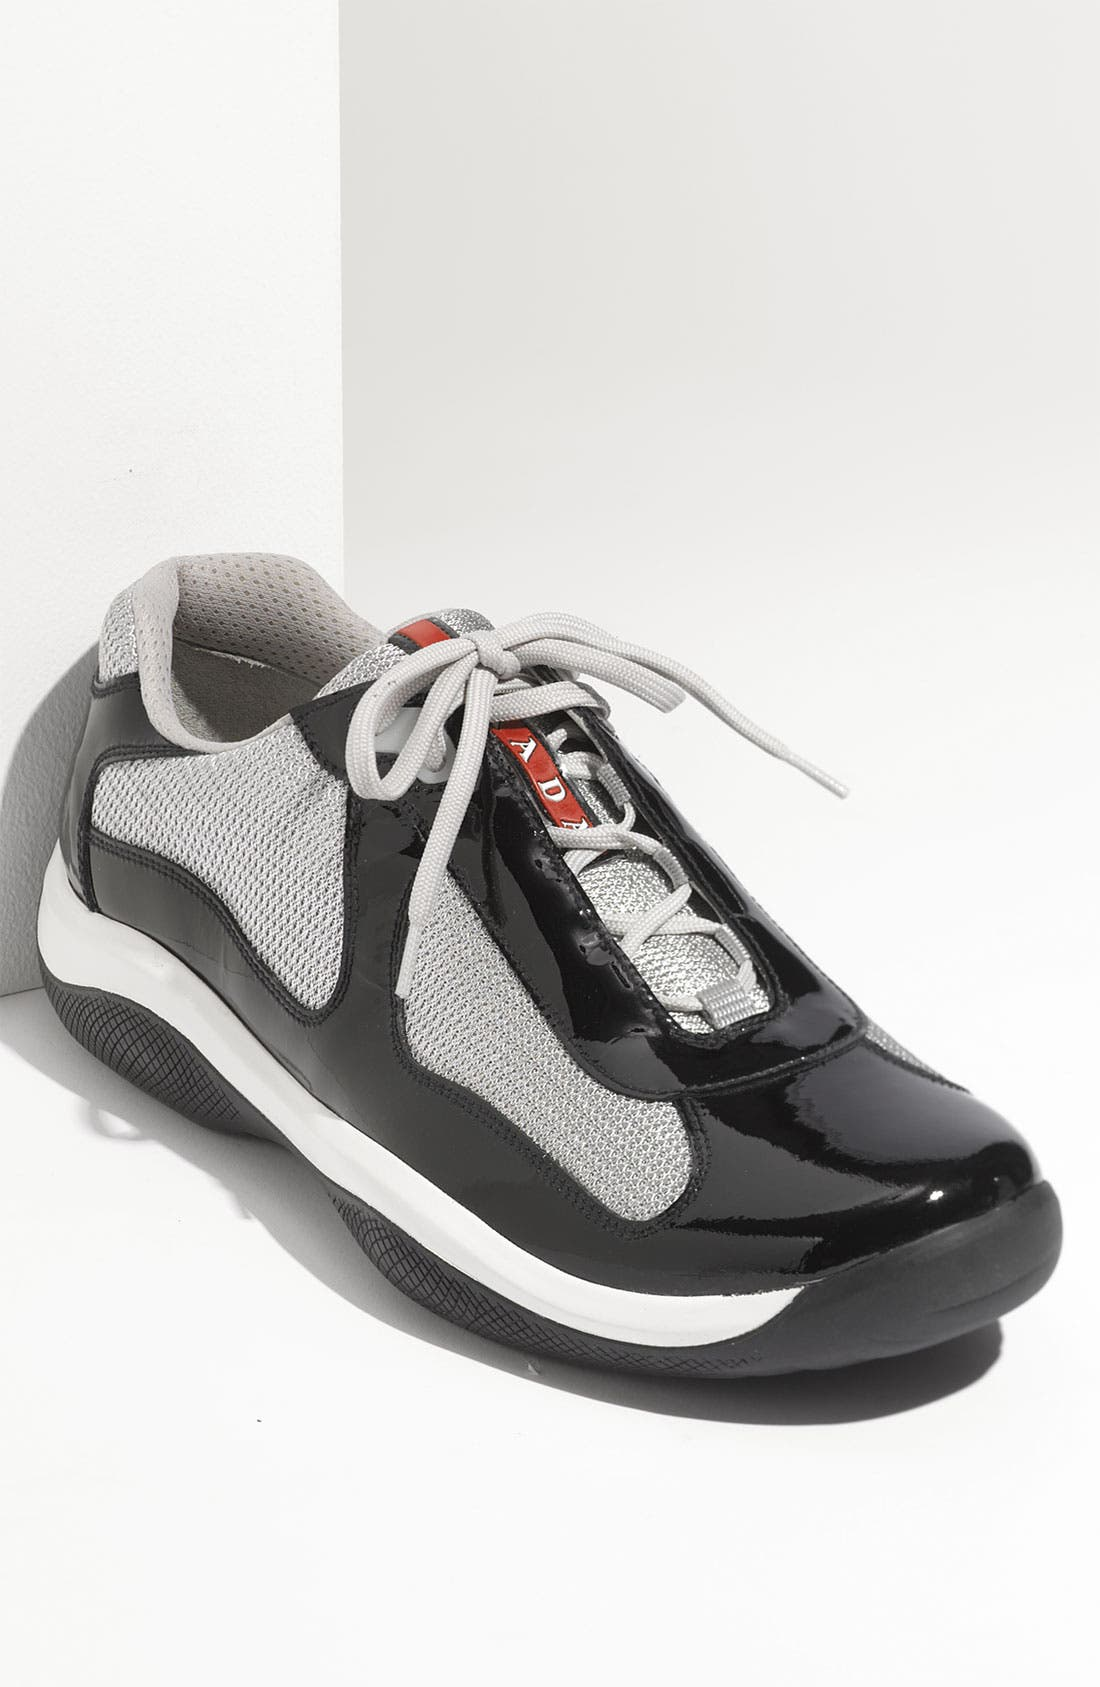 Alternate Image 1 Selected - Prada 'Punta Ala' Mesh & Leather Sneaker (Men)